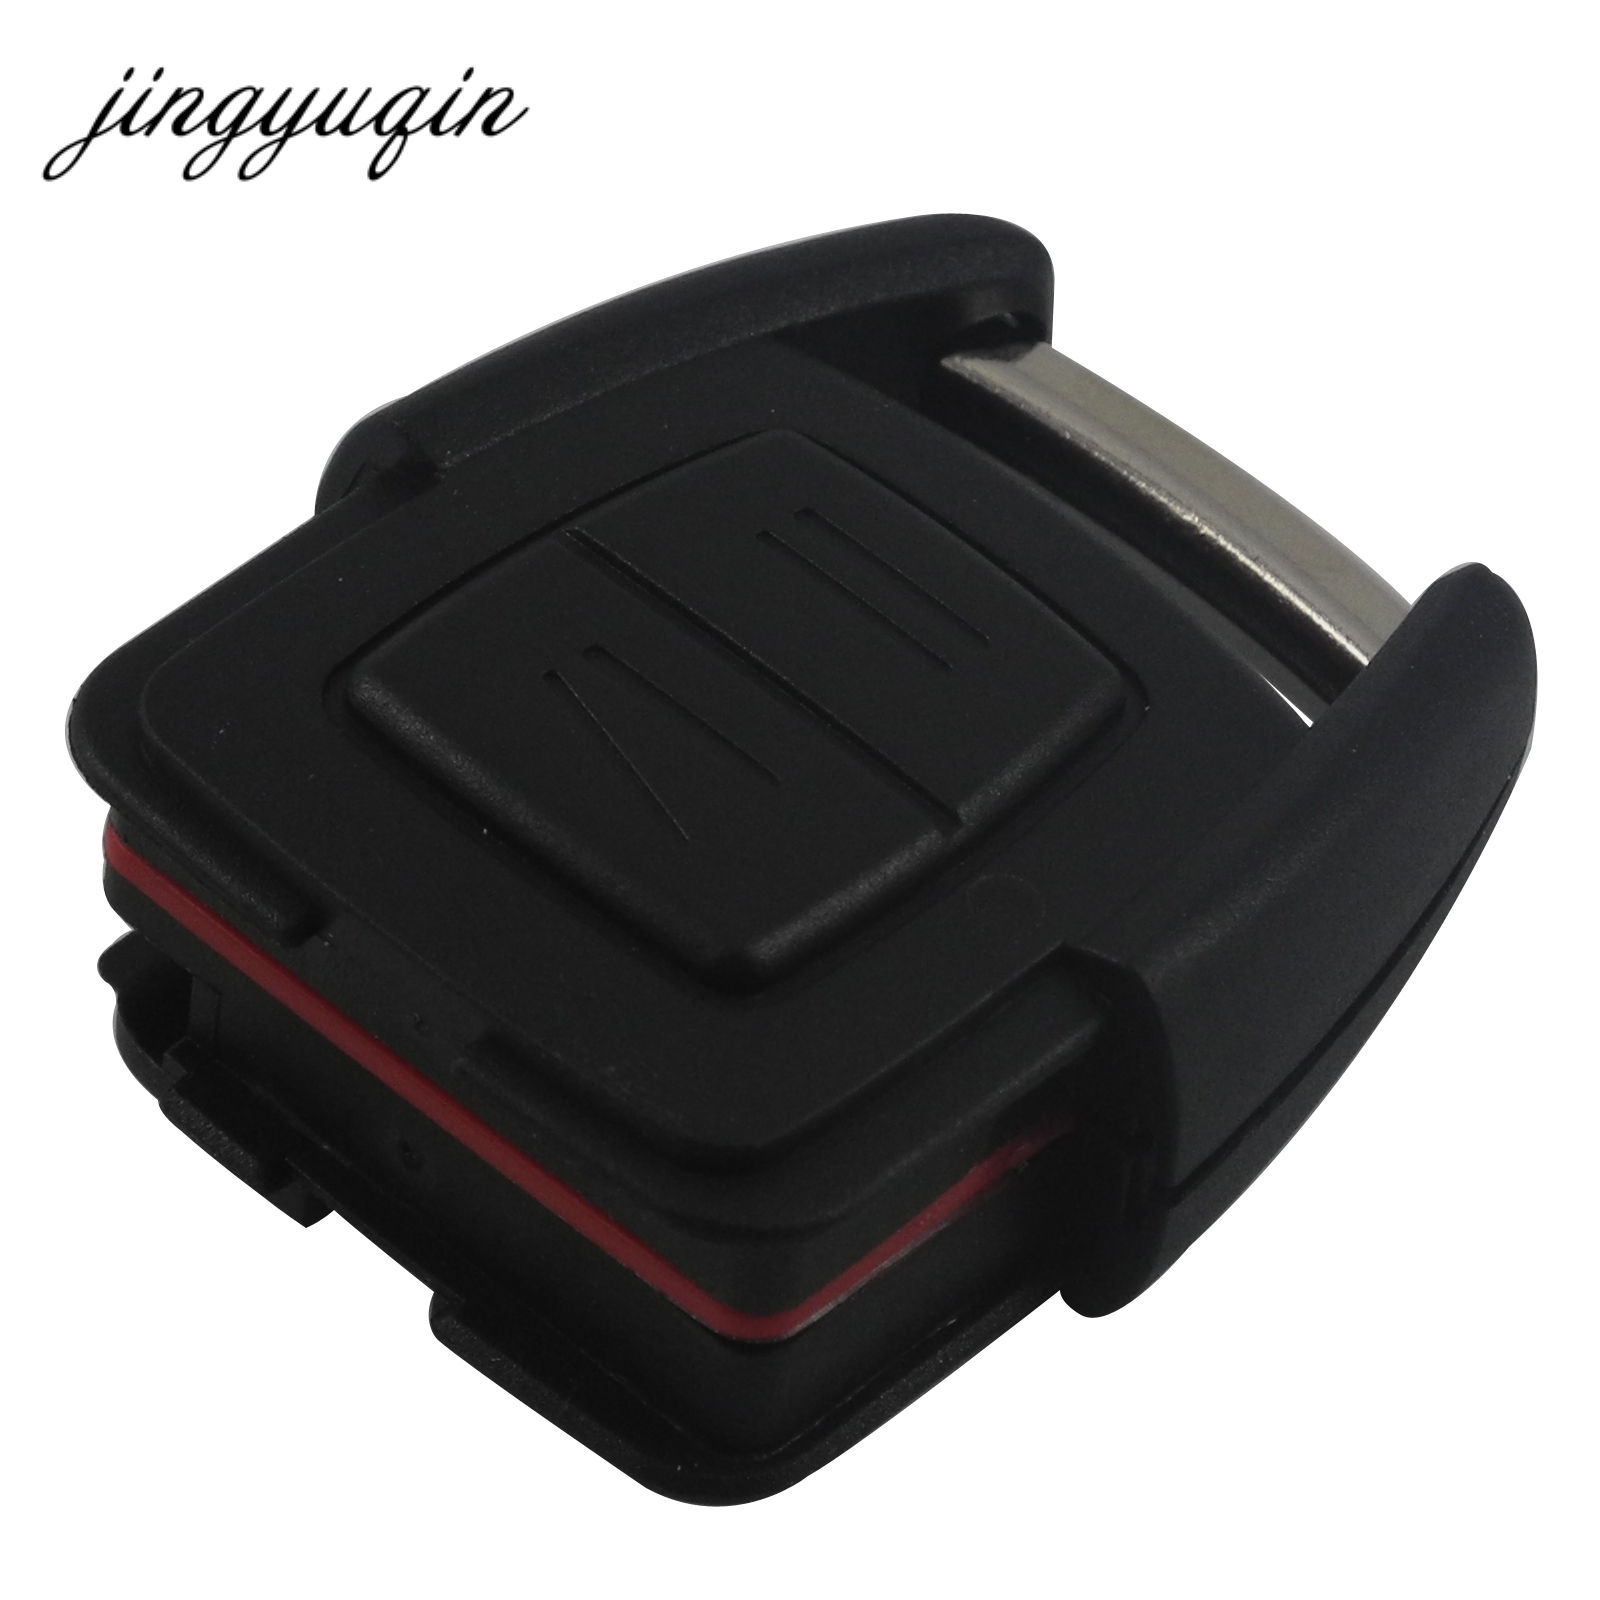 jingyuqin 2 Buttons Remote Car Key Shell for Vauxhall Opel Astra Zafira Omega Vectra No Chip Uncut Blade Car Key Case Fob jingyuqin new 1 button uncut blade remote car key shell for renault twingo clio kangoo master no chip keyless entry fob case page 2